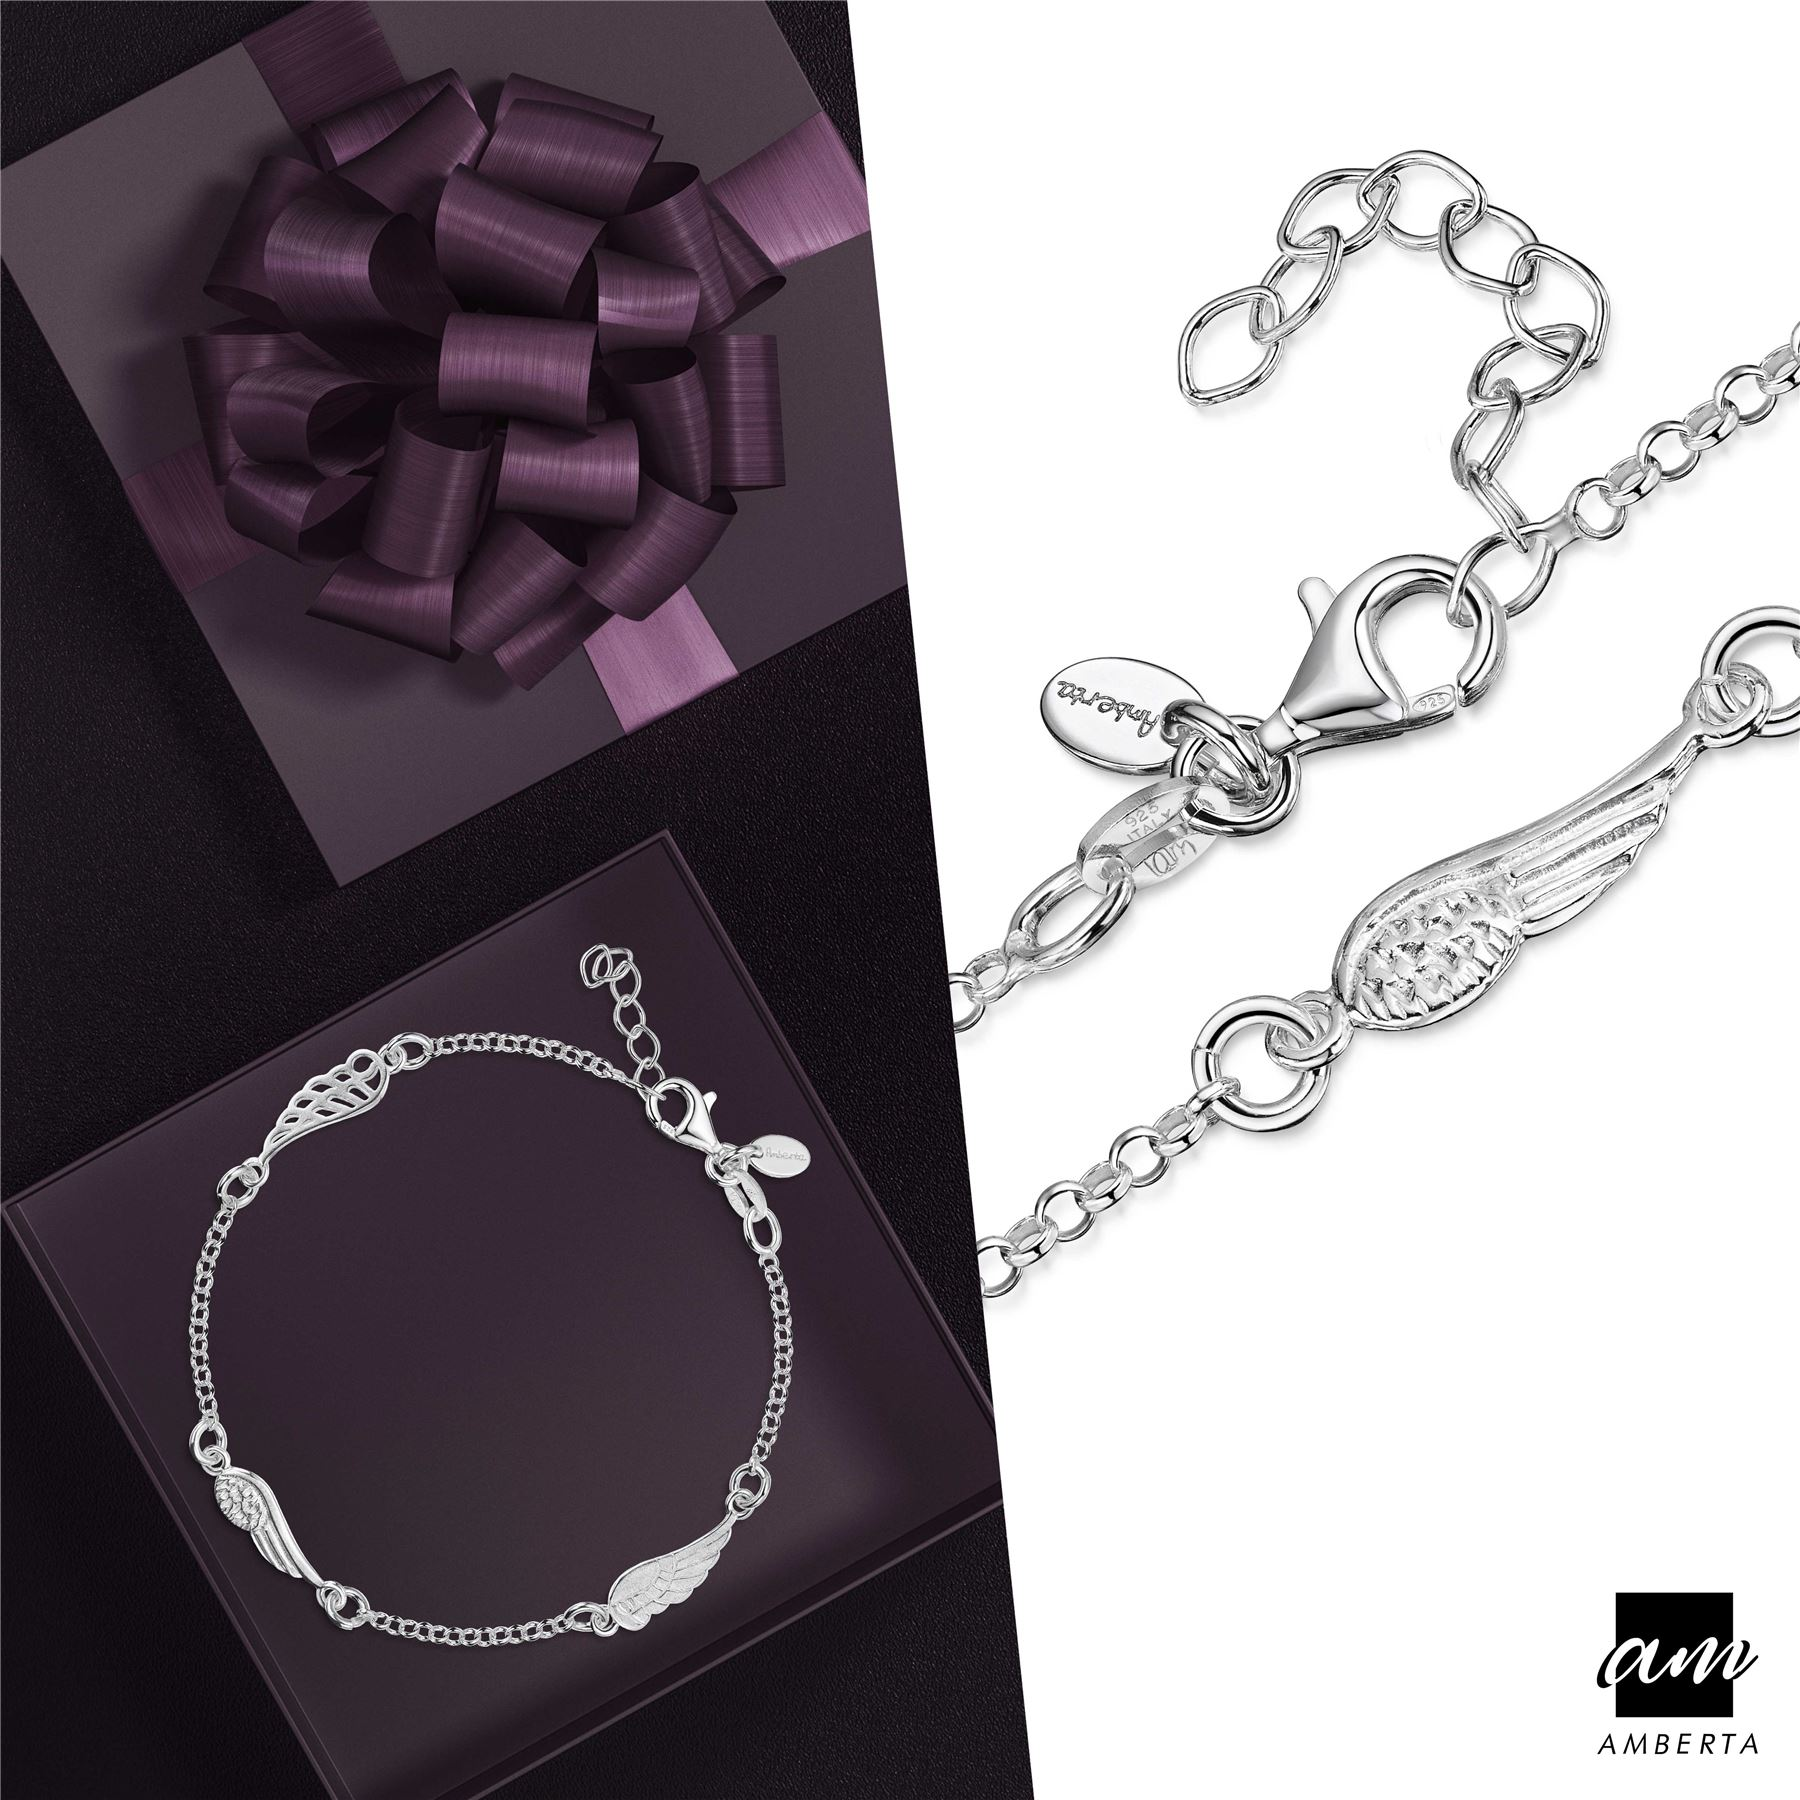 Amberta-925-Sterling-Silver-Adjustable-Rolo-Chain-Bracelet-with-Charms-for-Women miniature 7